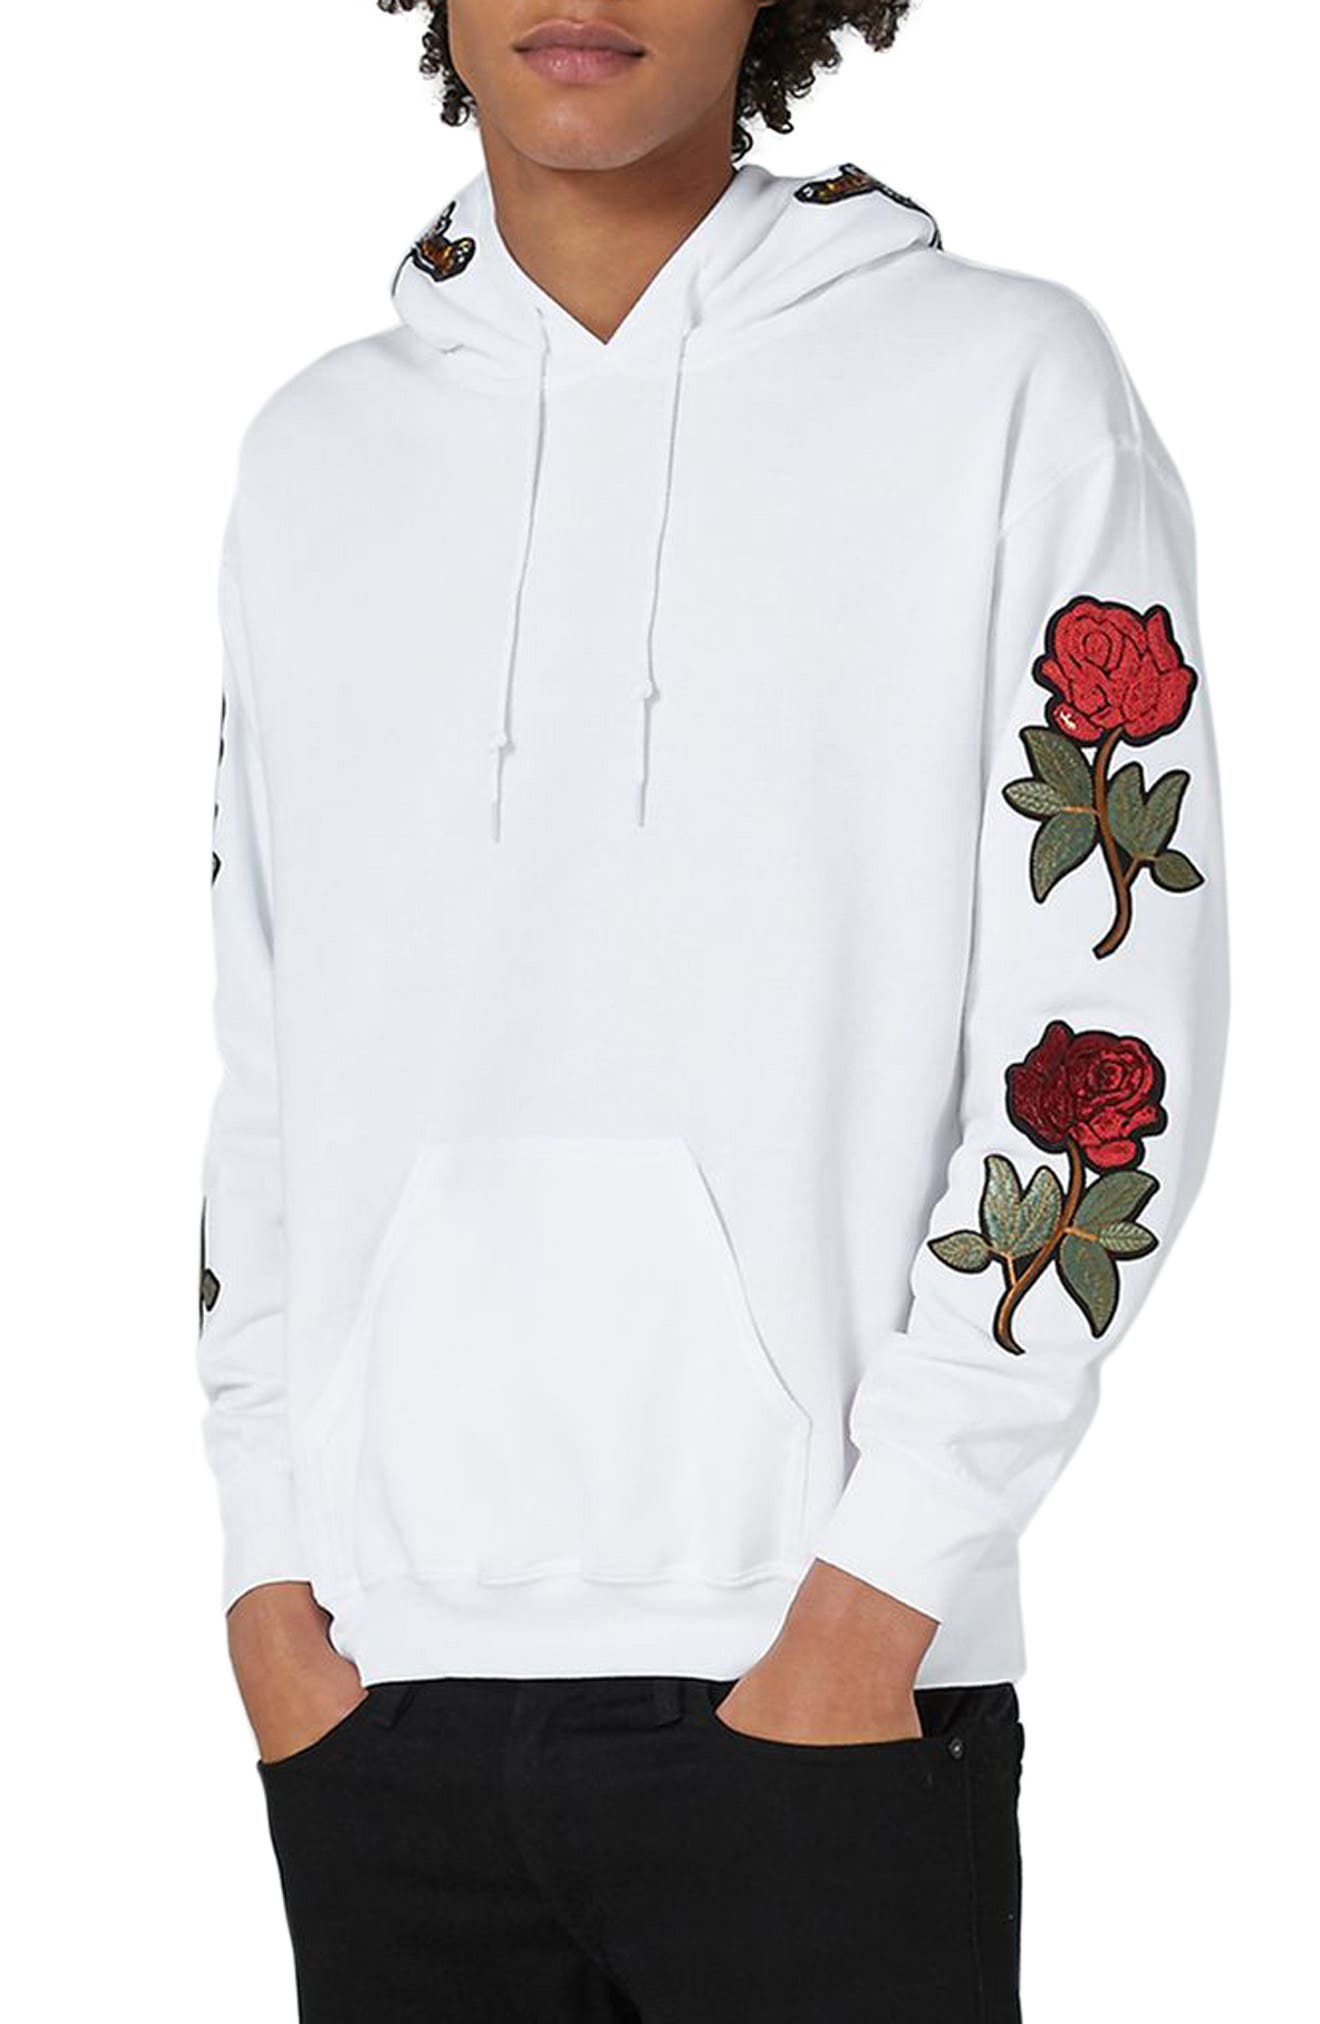 Embroidered Appliqué Hoodie,                             Main thumbnail 1, color,                             White Multi